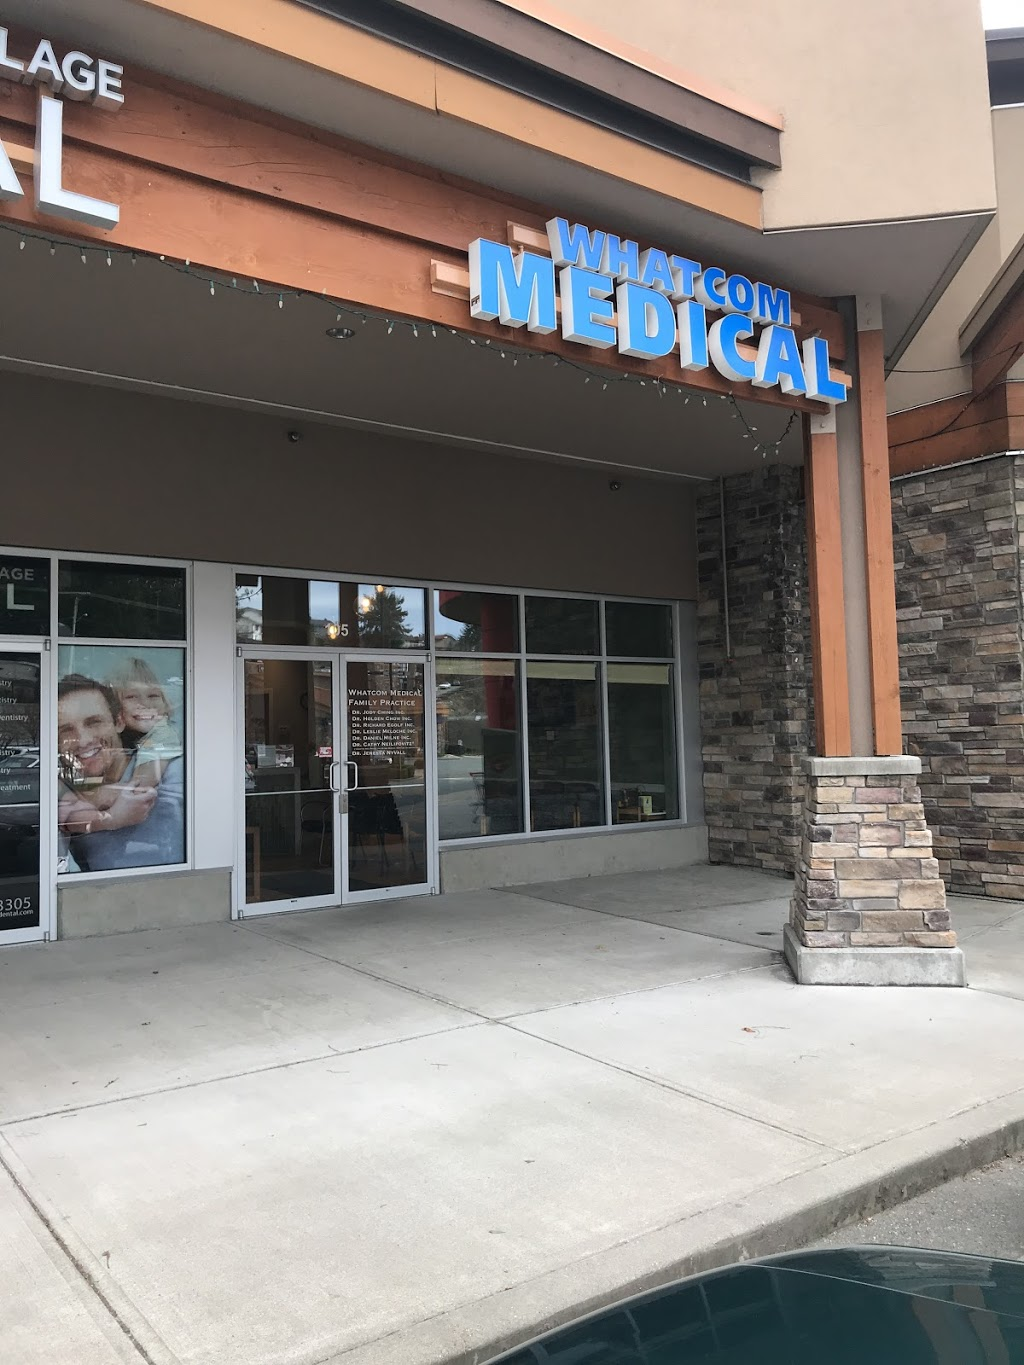 Whatcom Medical Family Practice | doctor | 2362 Whatcom Rd #105, Abbotsford, BC V3G 0C1, Canada | 6048535424 OR +1 604-853-5424